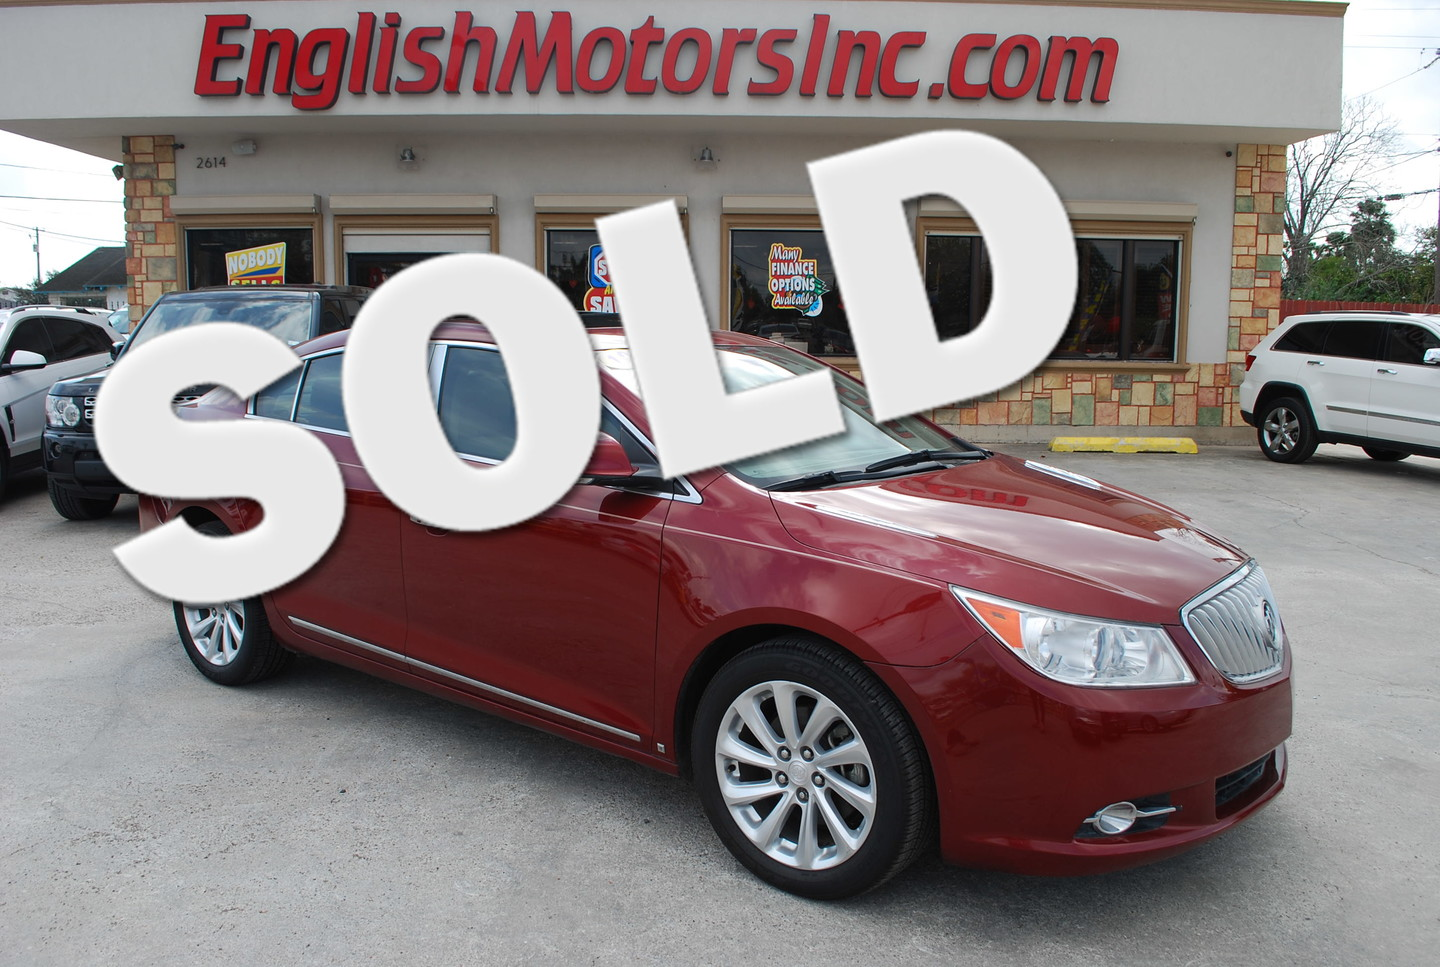 2010 buick lacrosse cxs brownsville tx english motors for English motors inc brownsville tx